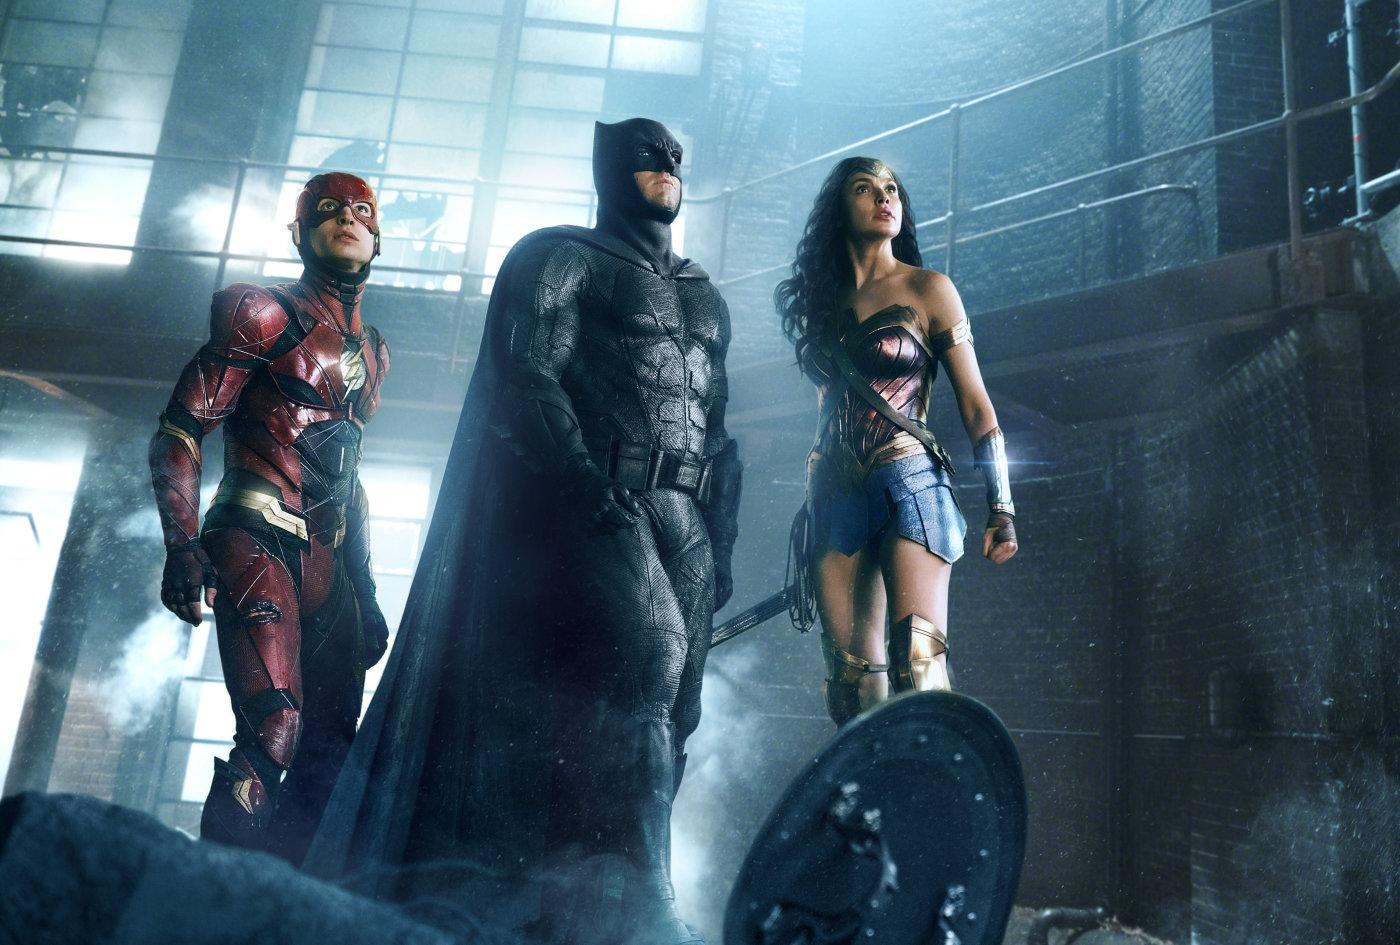 Ezra Miller as The Flash, Ben Affleck as Batman, Gal Gadot as Wonder Woman (credit: Warner Bros)